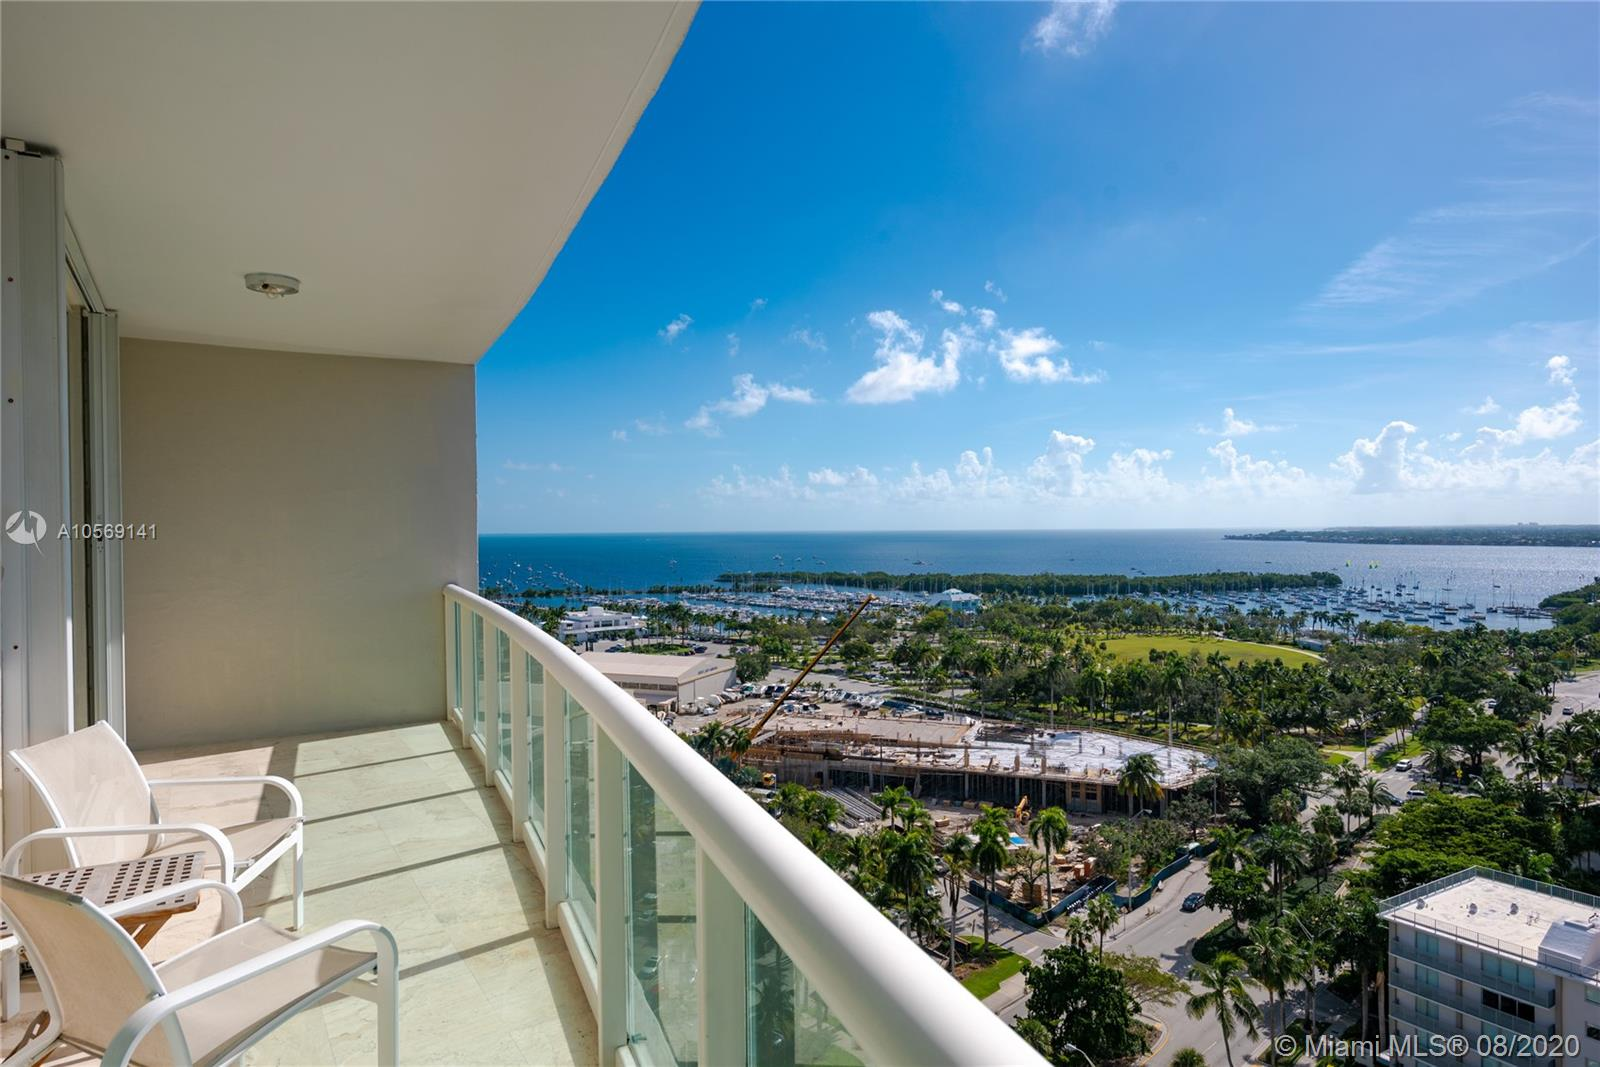 2645 S Bayshore Dr #1702 For Sale A10569141, FL